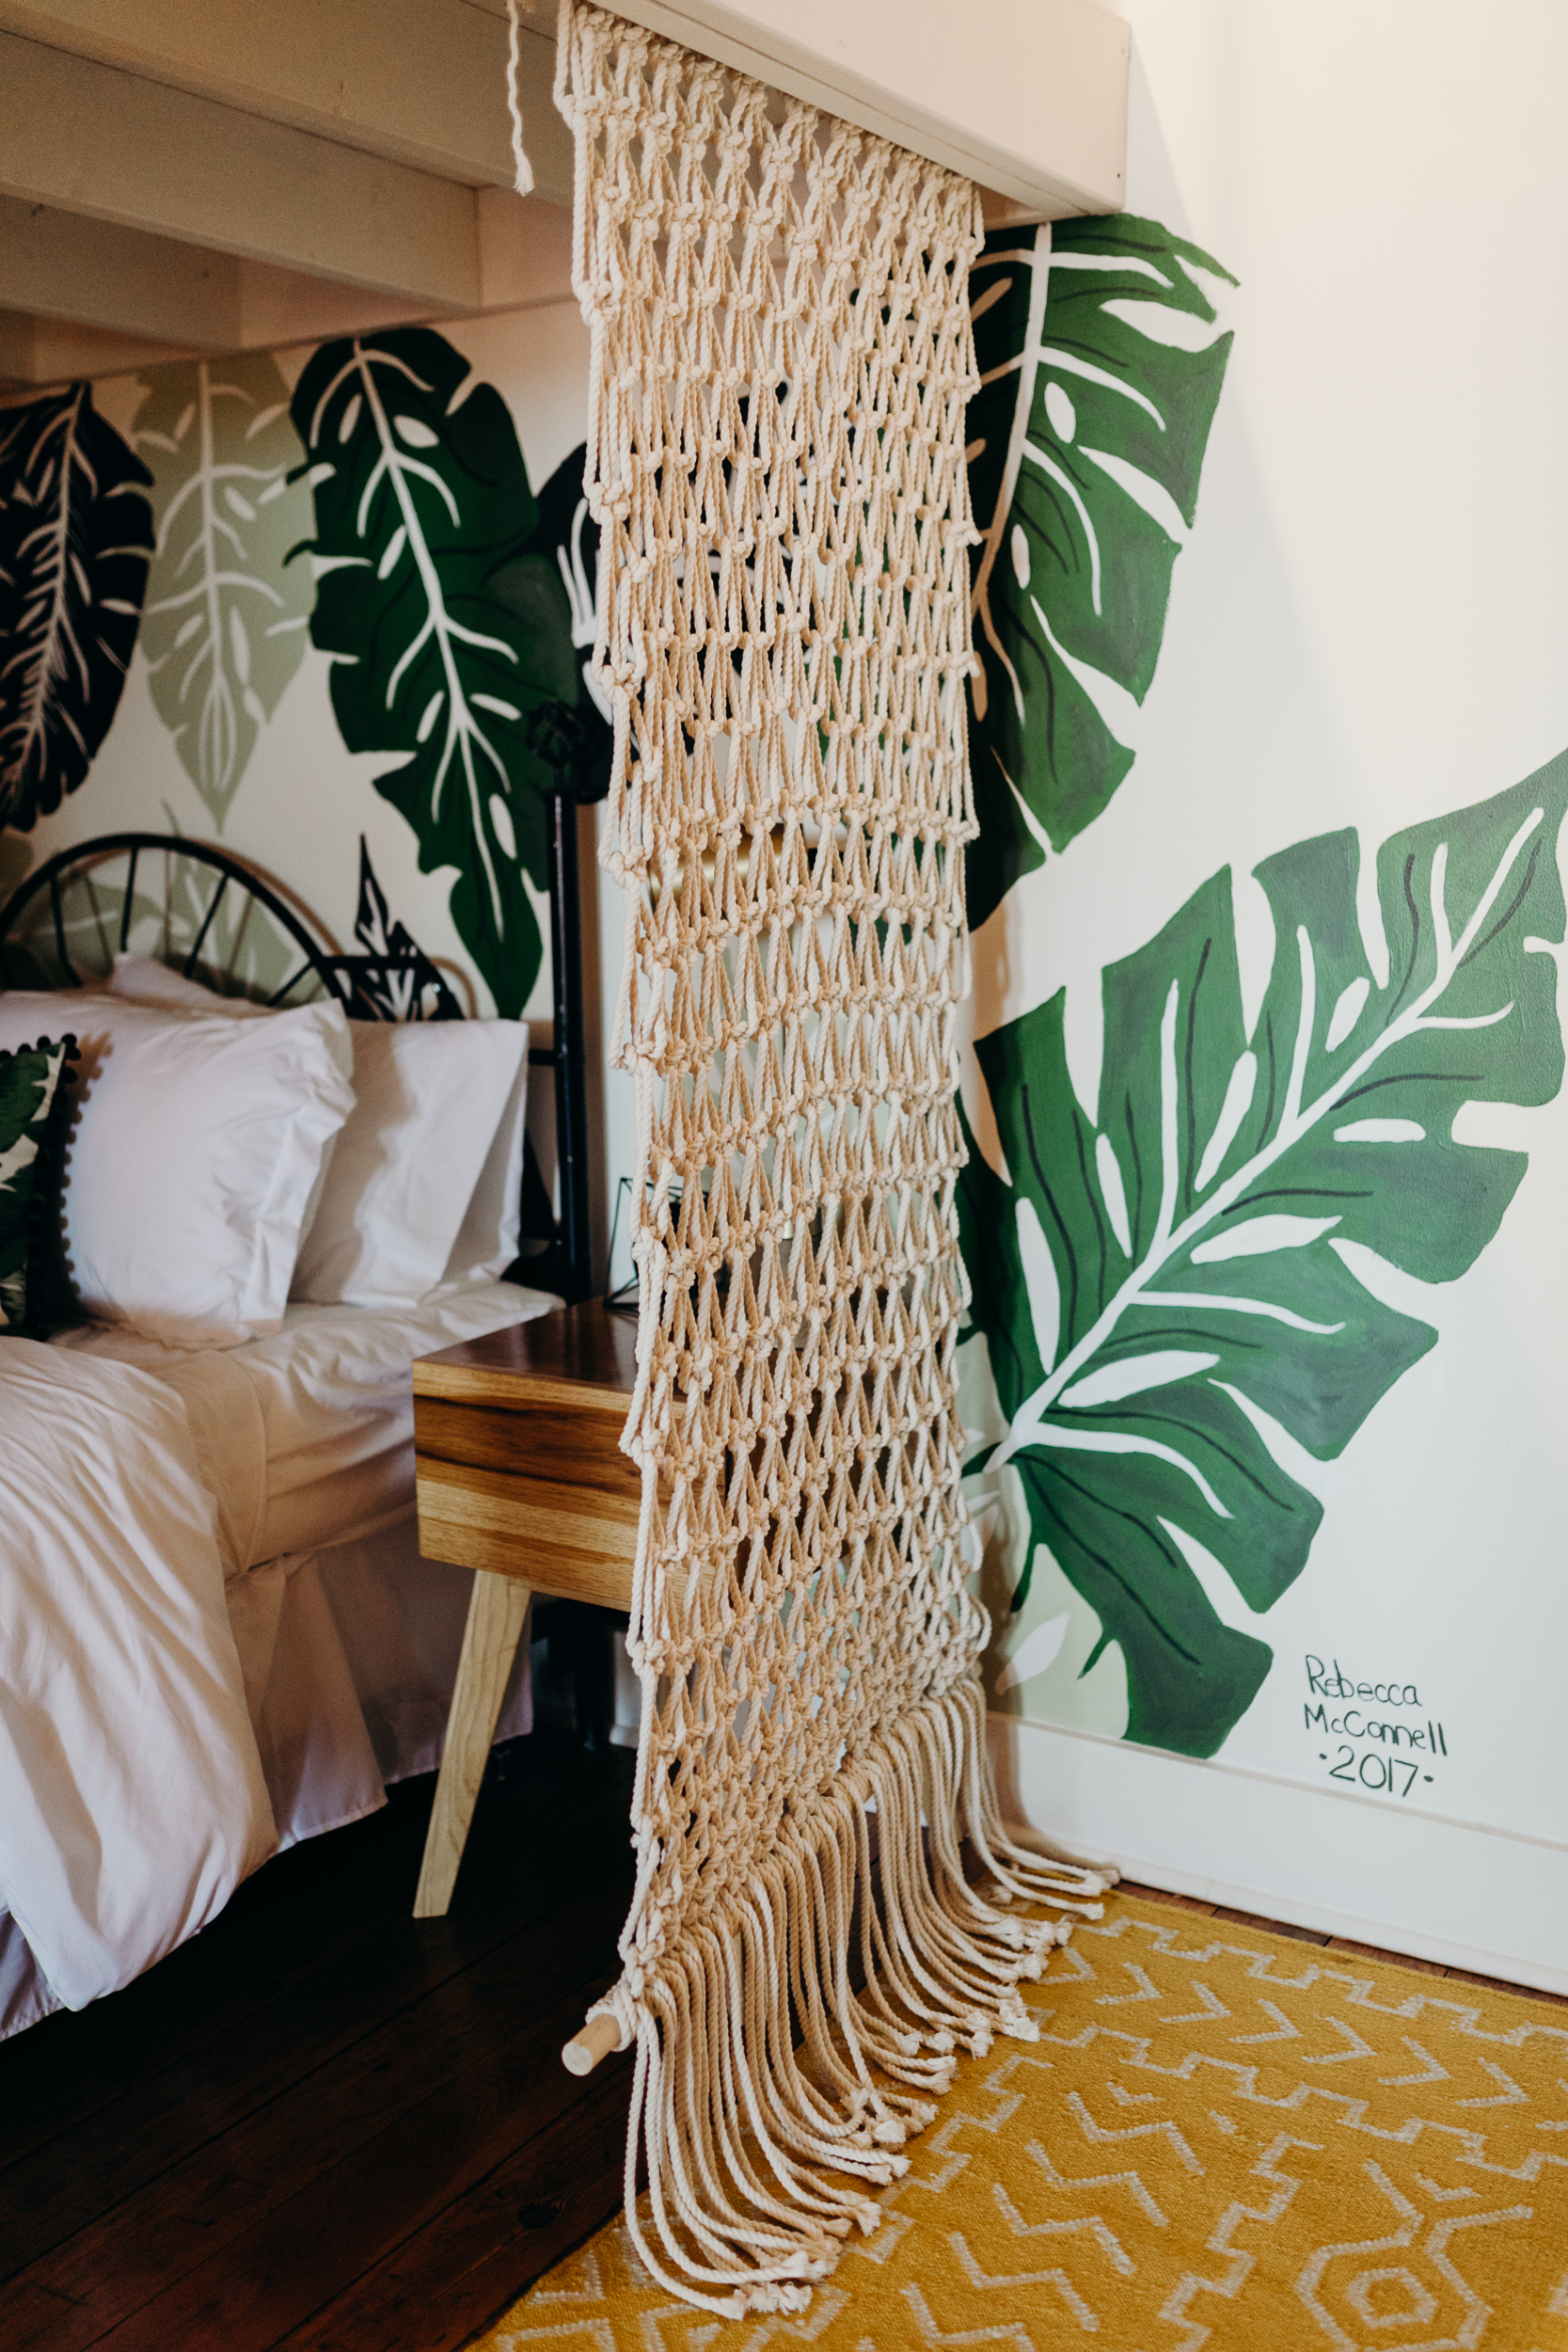 Woven hanging from loft in airbnb